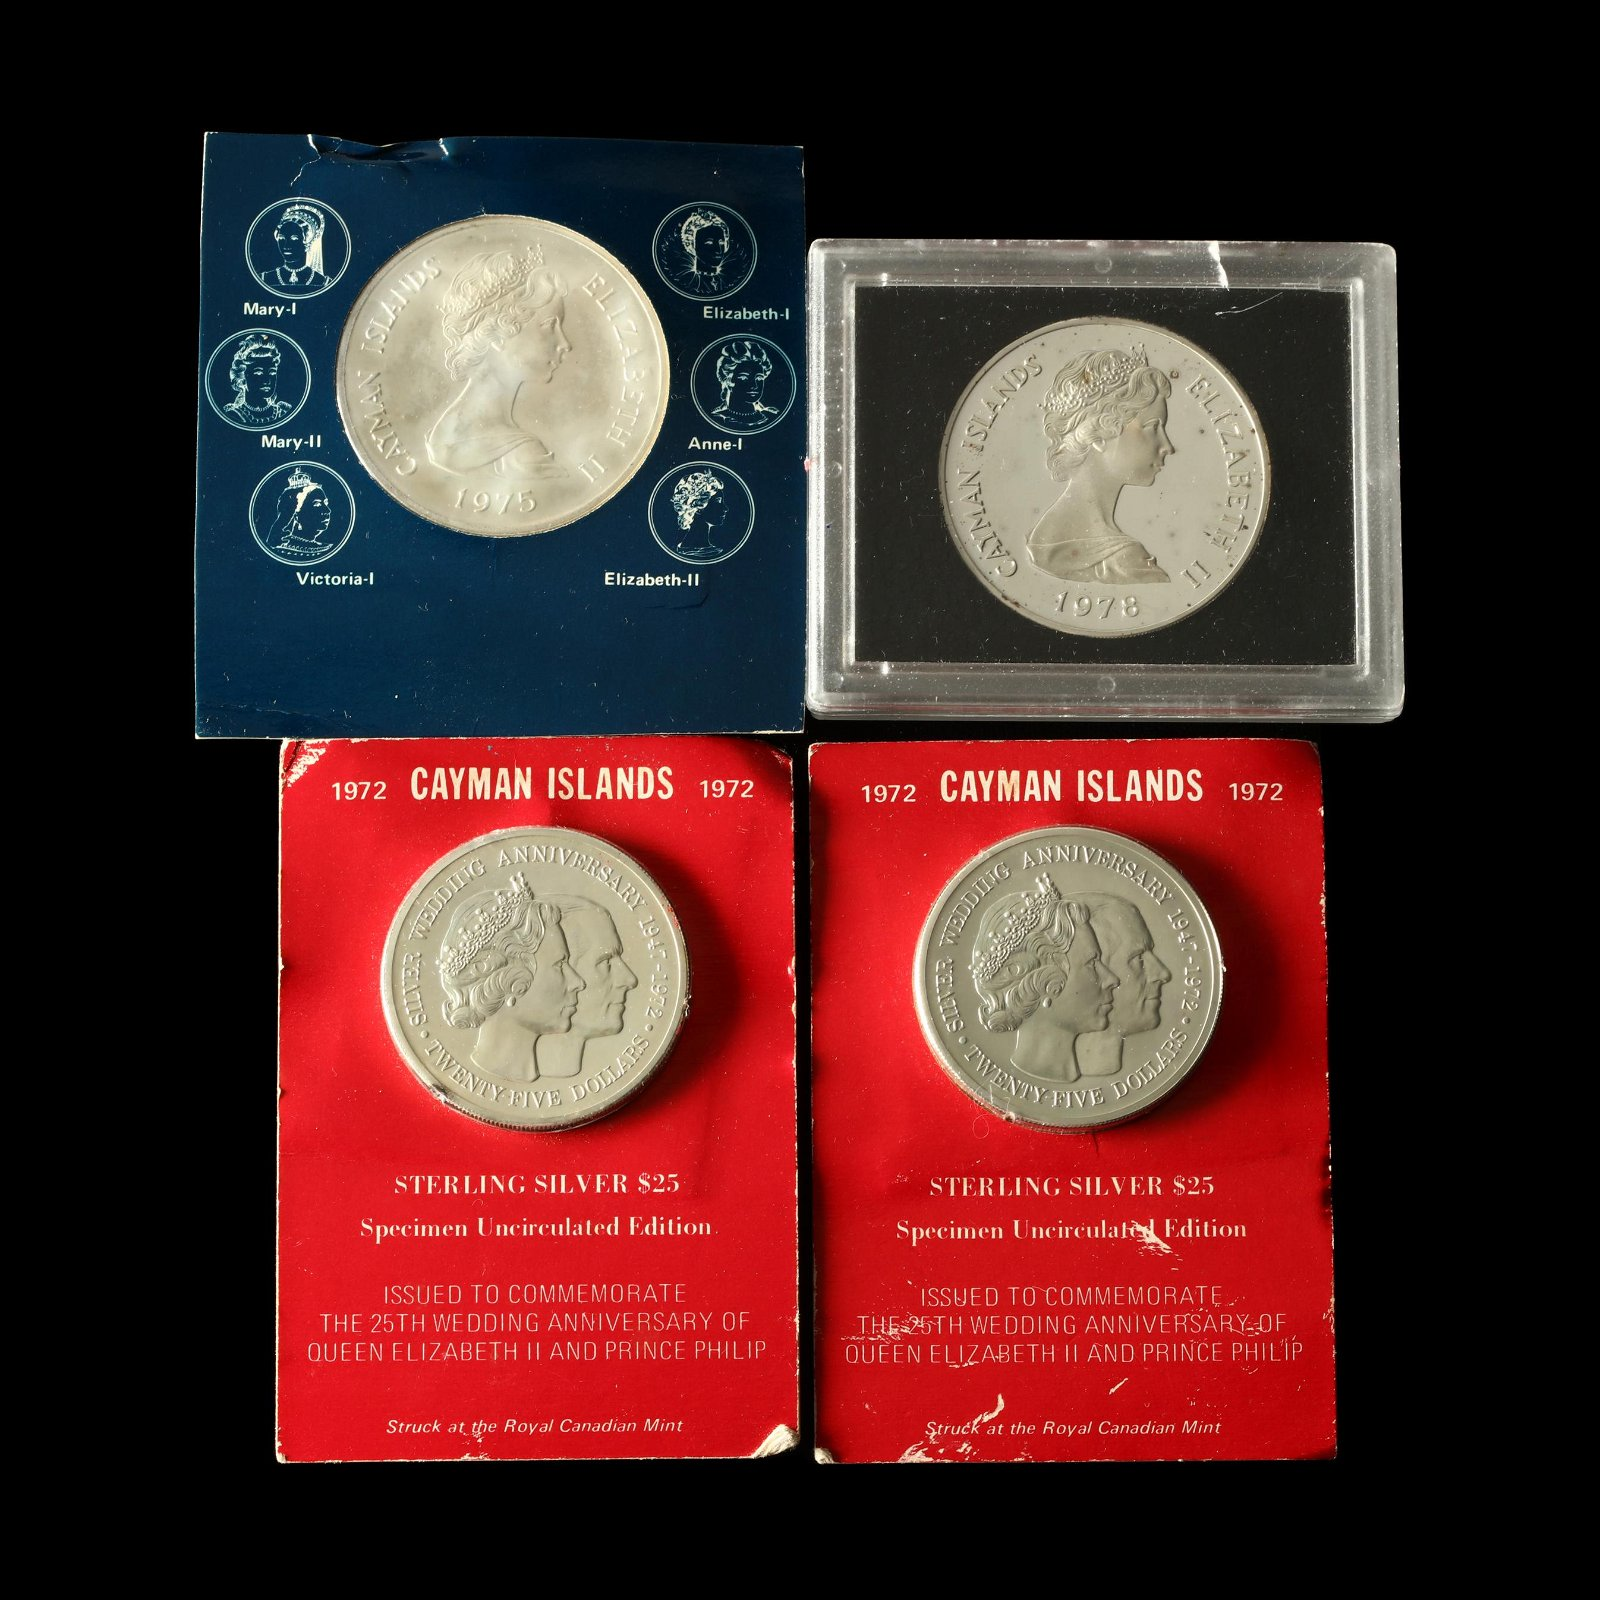 Four Cayman Islands Large Silver Commemorative Coins